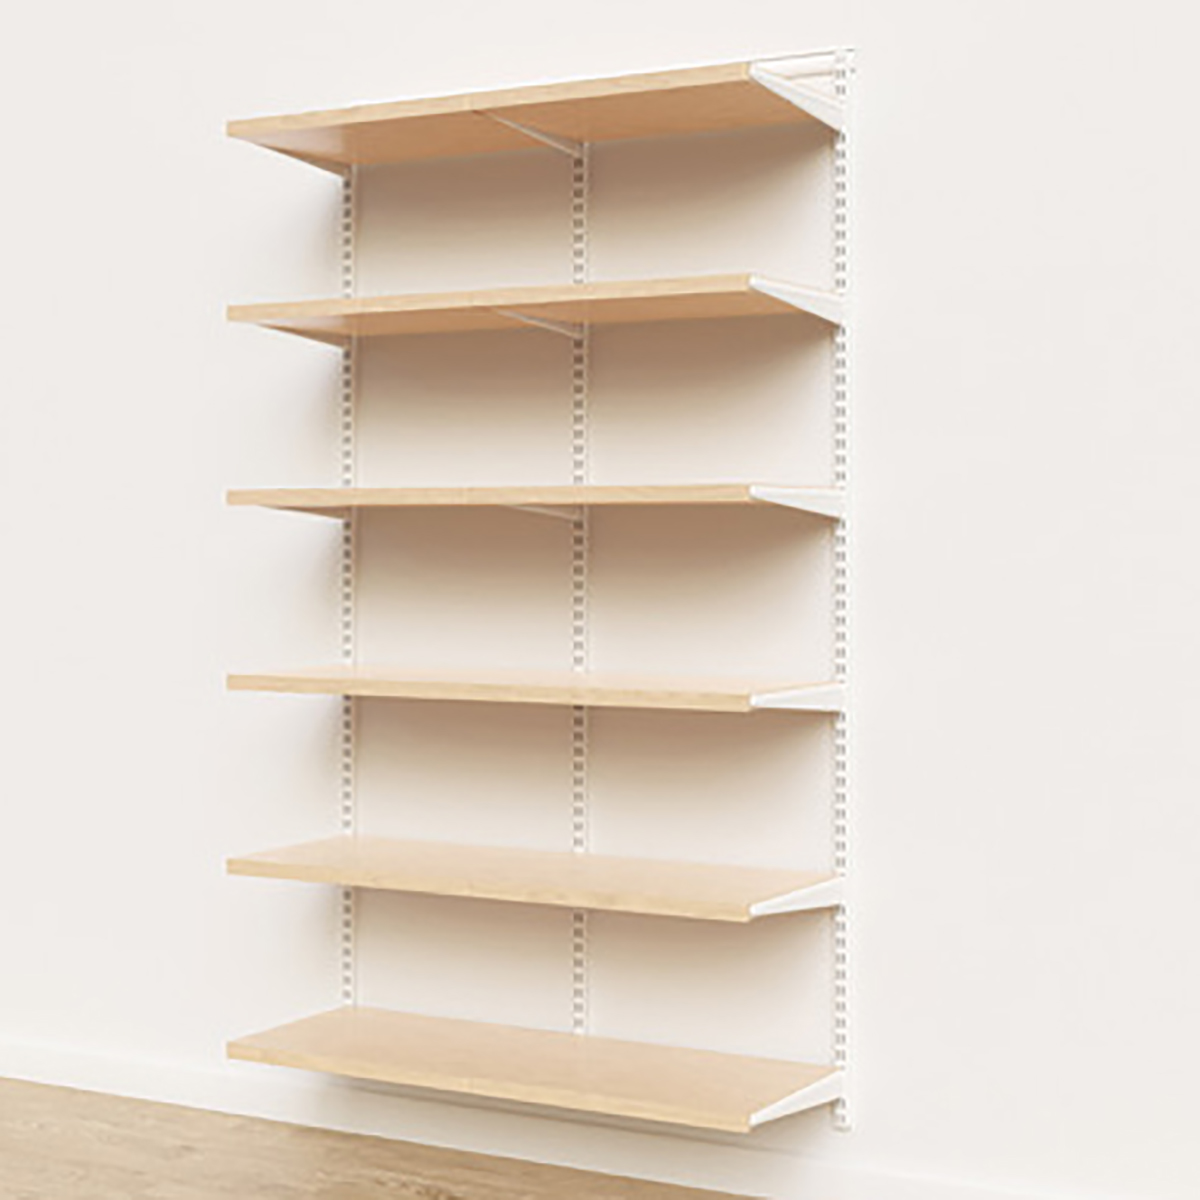 Elfa Décor 4' White & Birch Basic Shelving Units for Anywhere